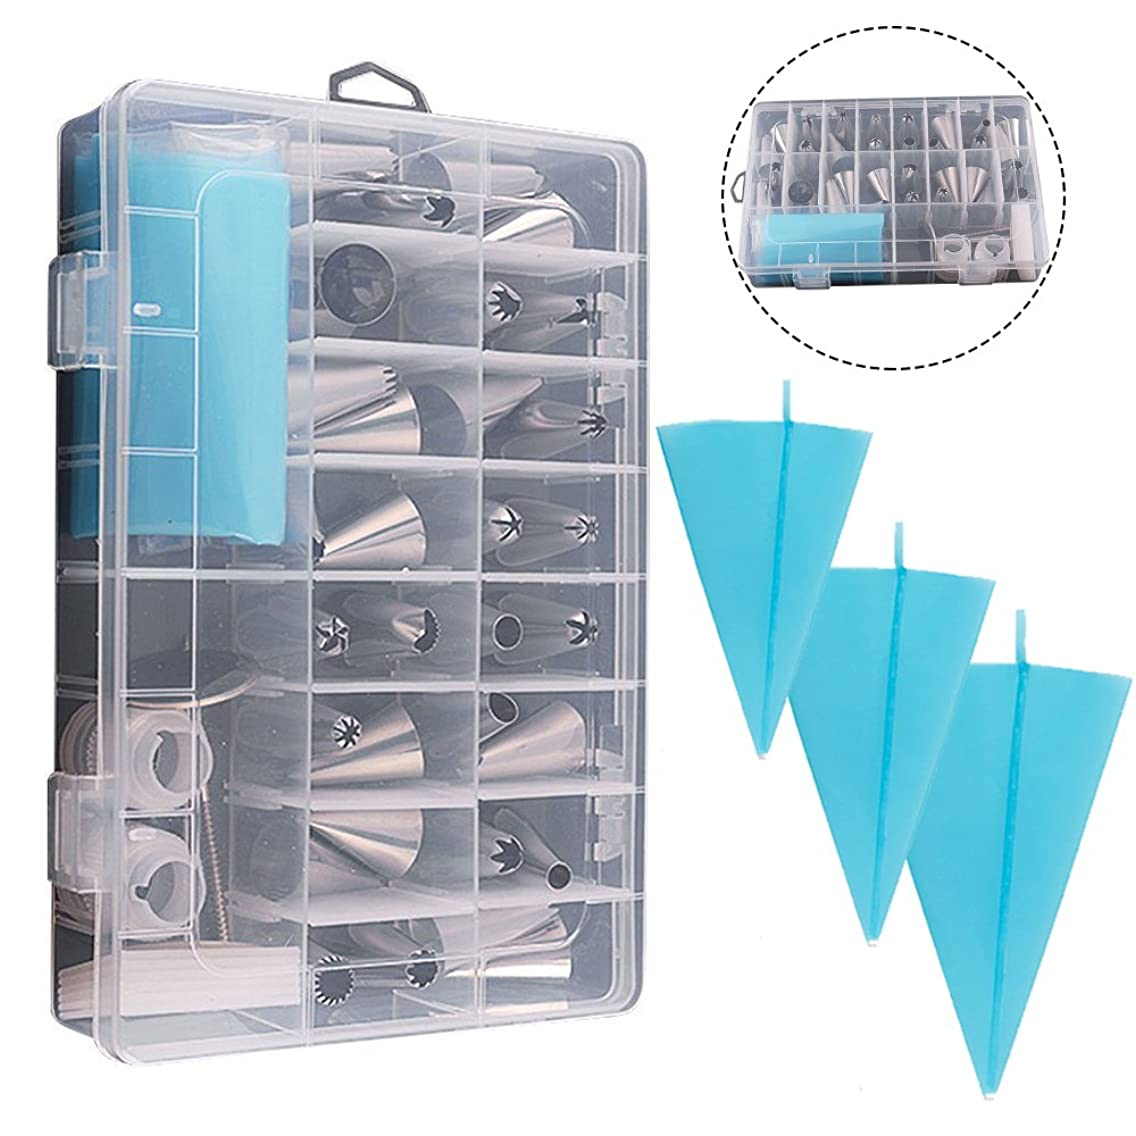 39PCS Pastry Tube Set Piping Tips with Storage Case.Include Icing Tips, Large Piping Nozzles, Couplers, Silicone Pastry Bags, Flower Nails, Icing Smoother, Baking Decoration Tools for Cake Cookies